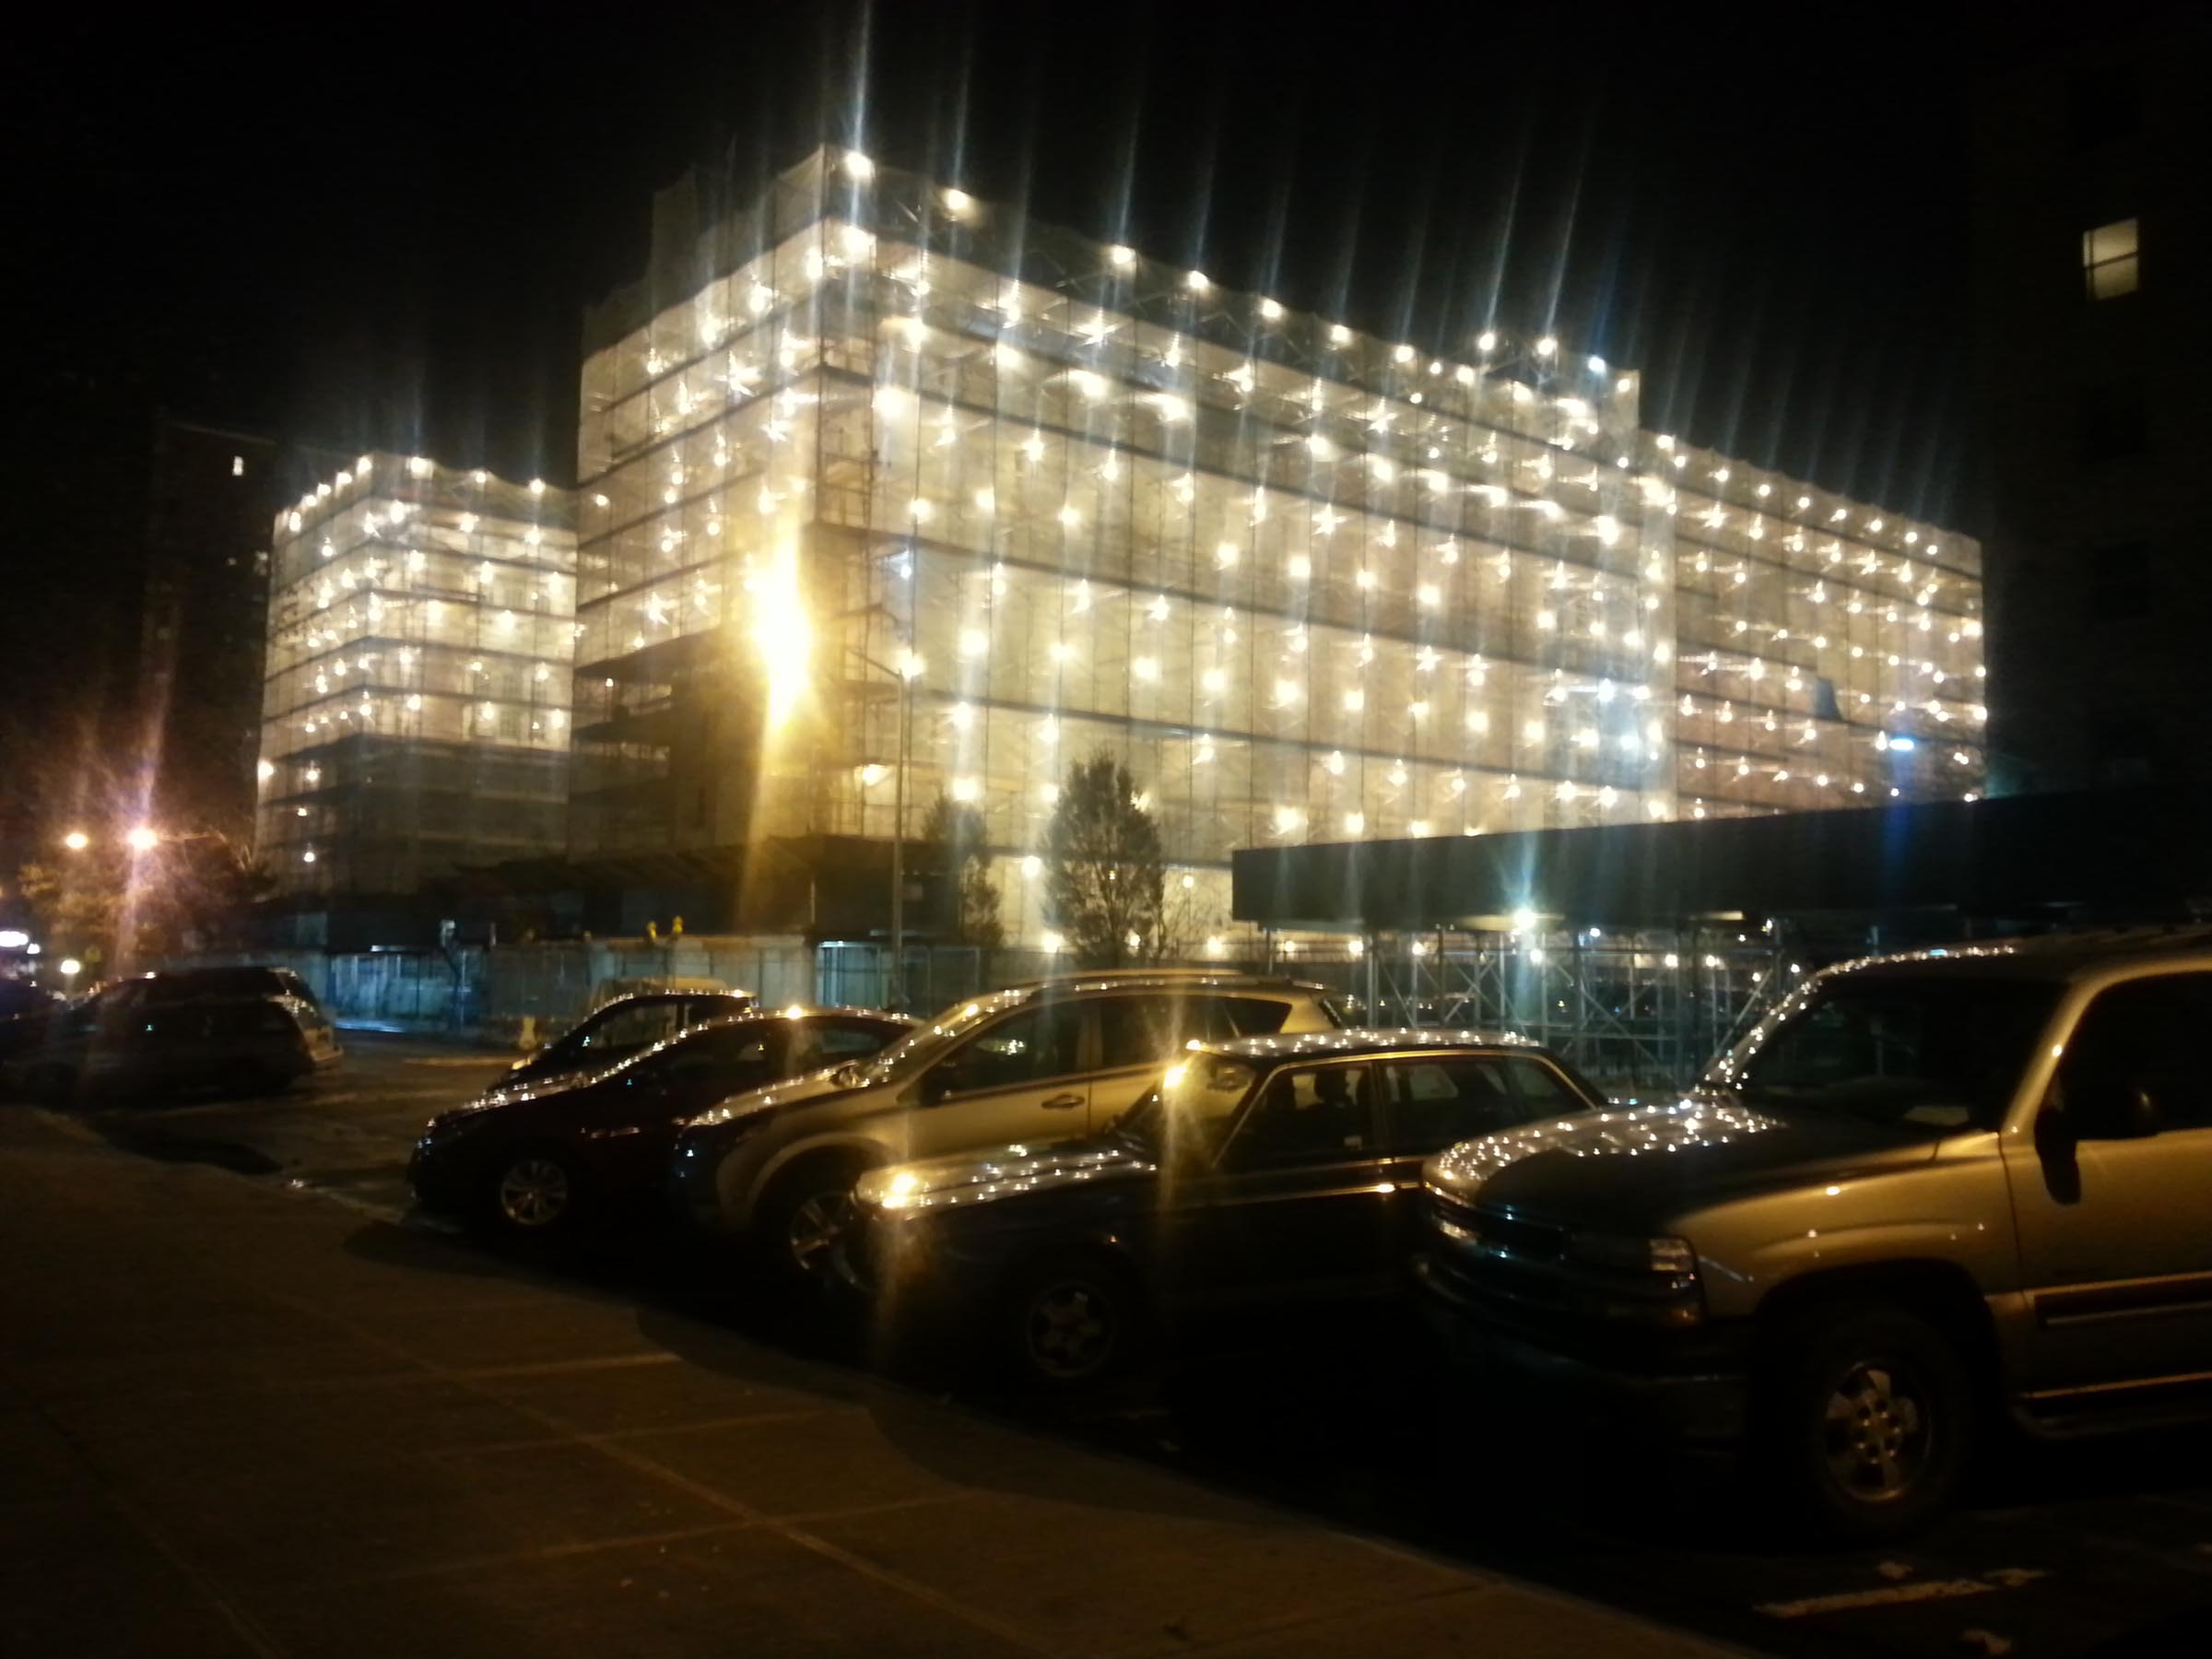 An illuminated building at night. The exterior of the building is covered in netting and hundreds of work lights, making the building appear to be made of light. It's reflected on the hoods of cars parked across the street.